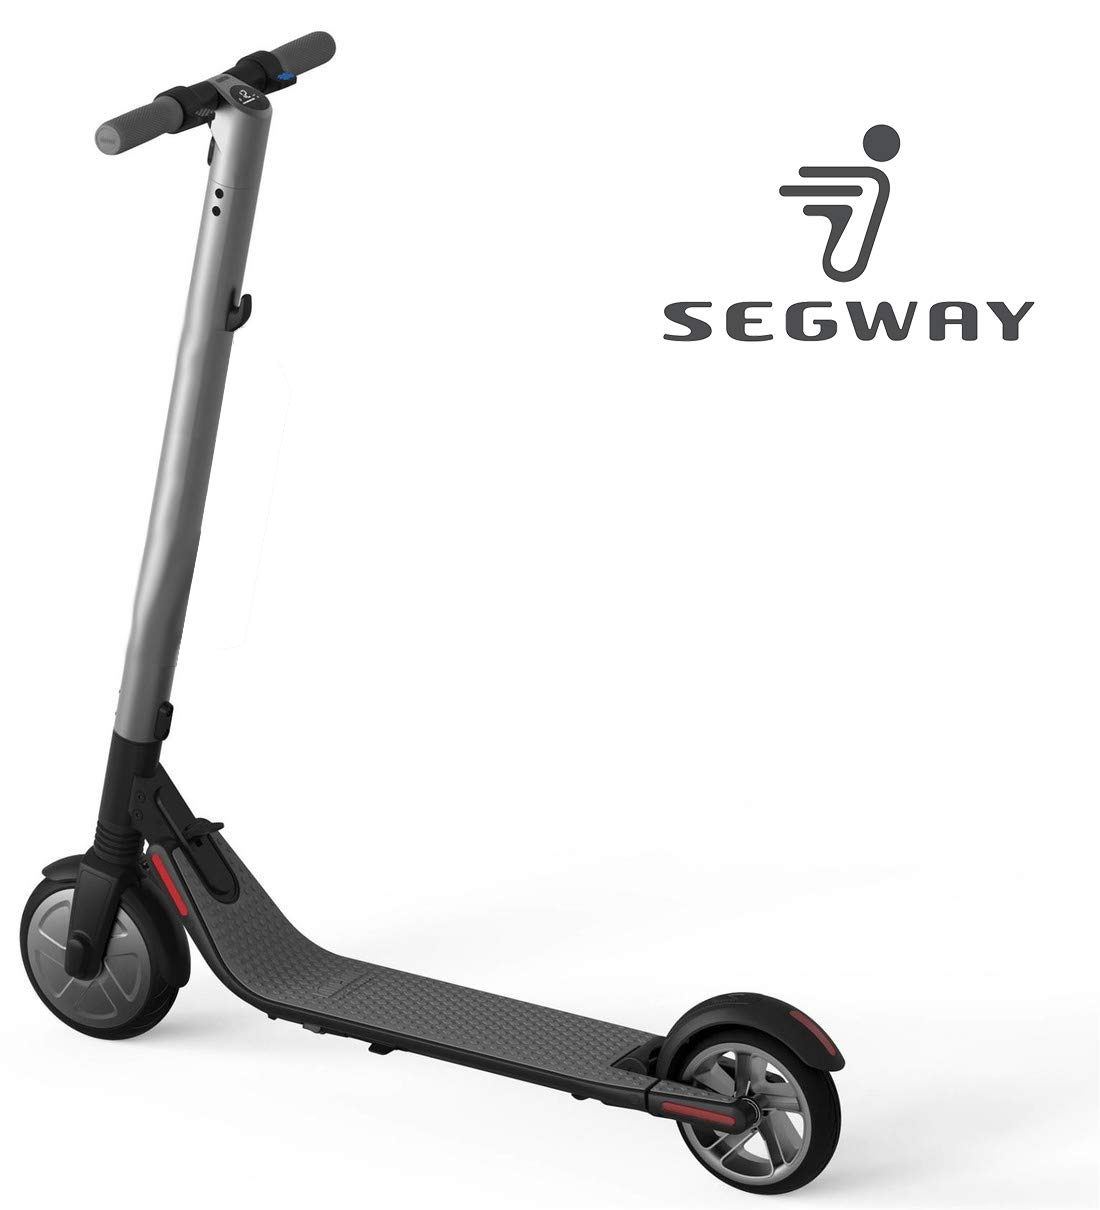 Segway Ninebot KickScooter ES2 Pro Electric Kick Scooter for Adults & Kids - Mobility Folding e-Scooter Upgraded Motor Power (Silver)